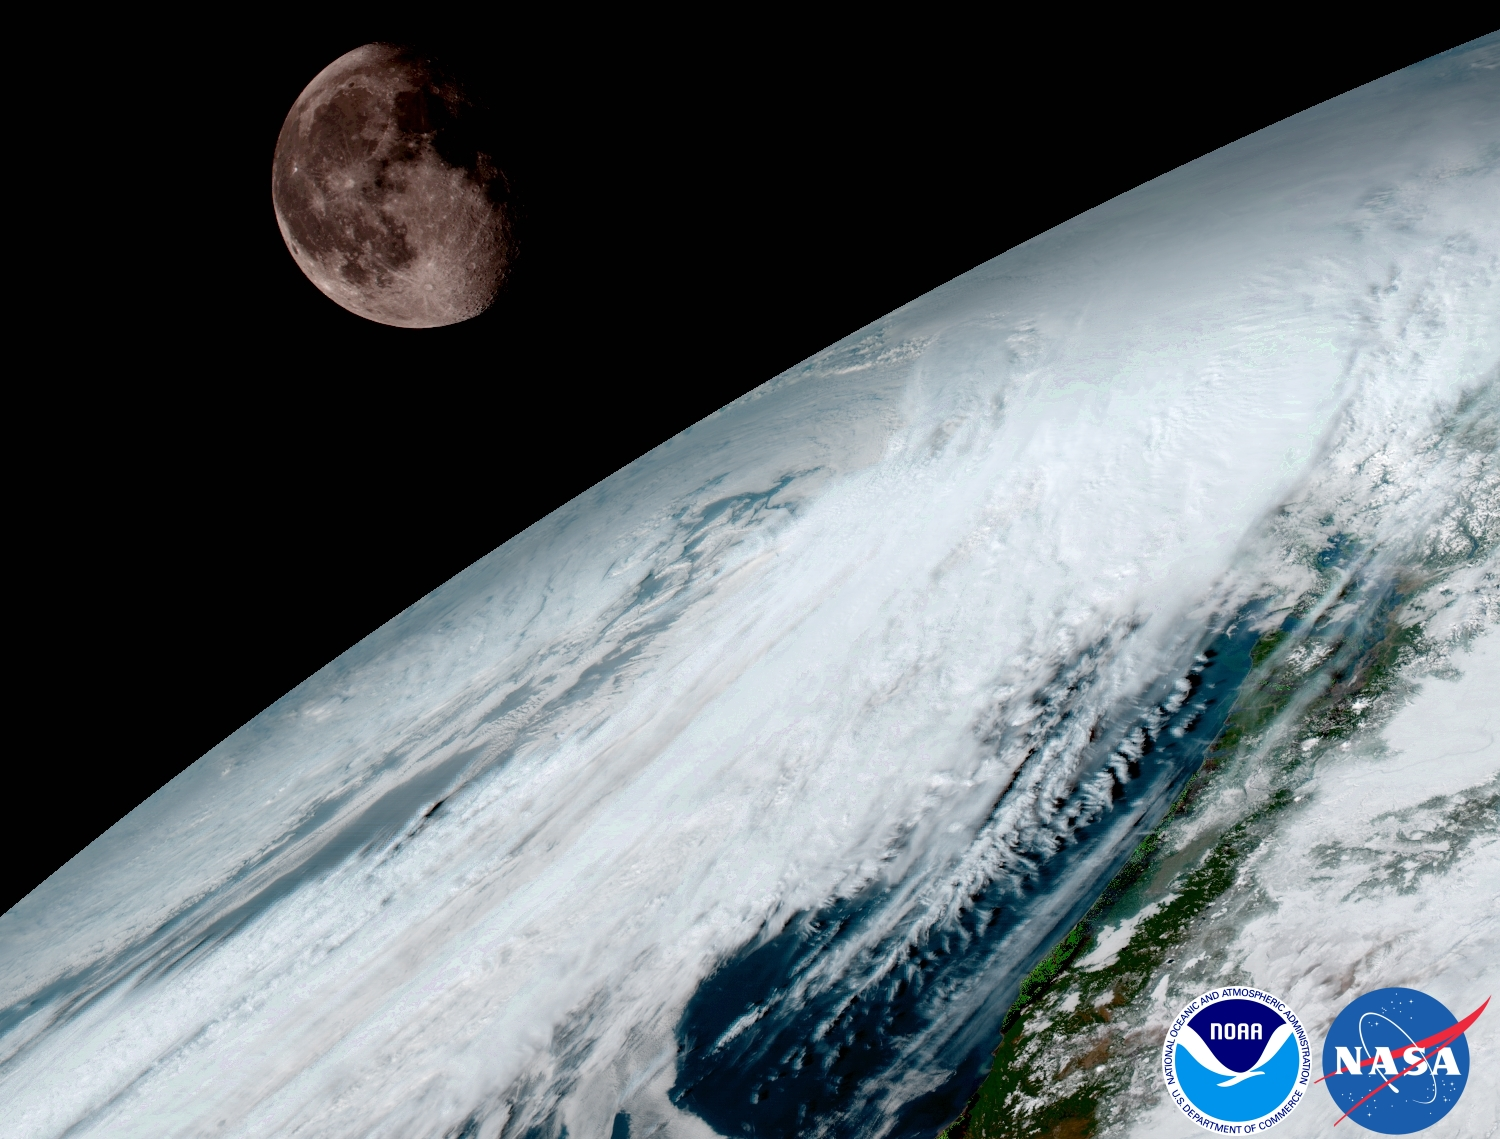 GOES-16 calibration image of Earth and the distant Moon.